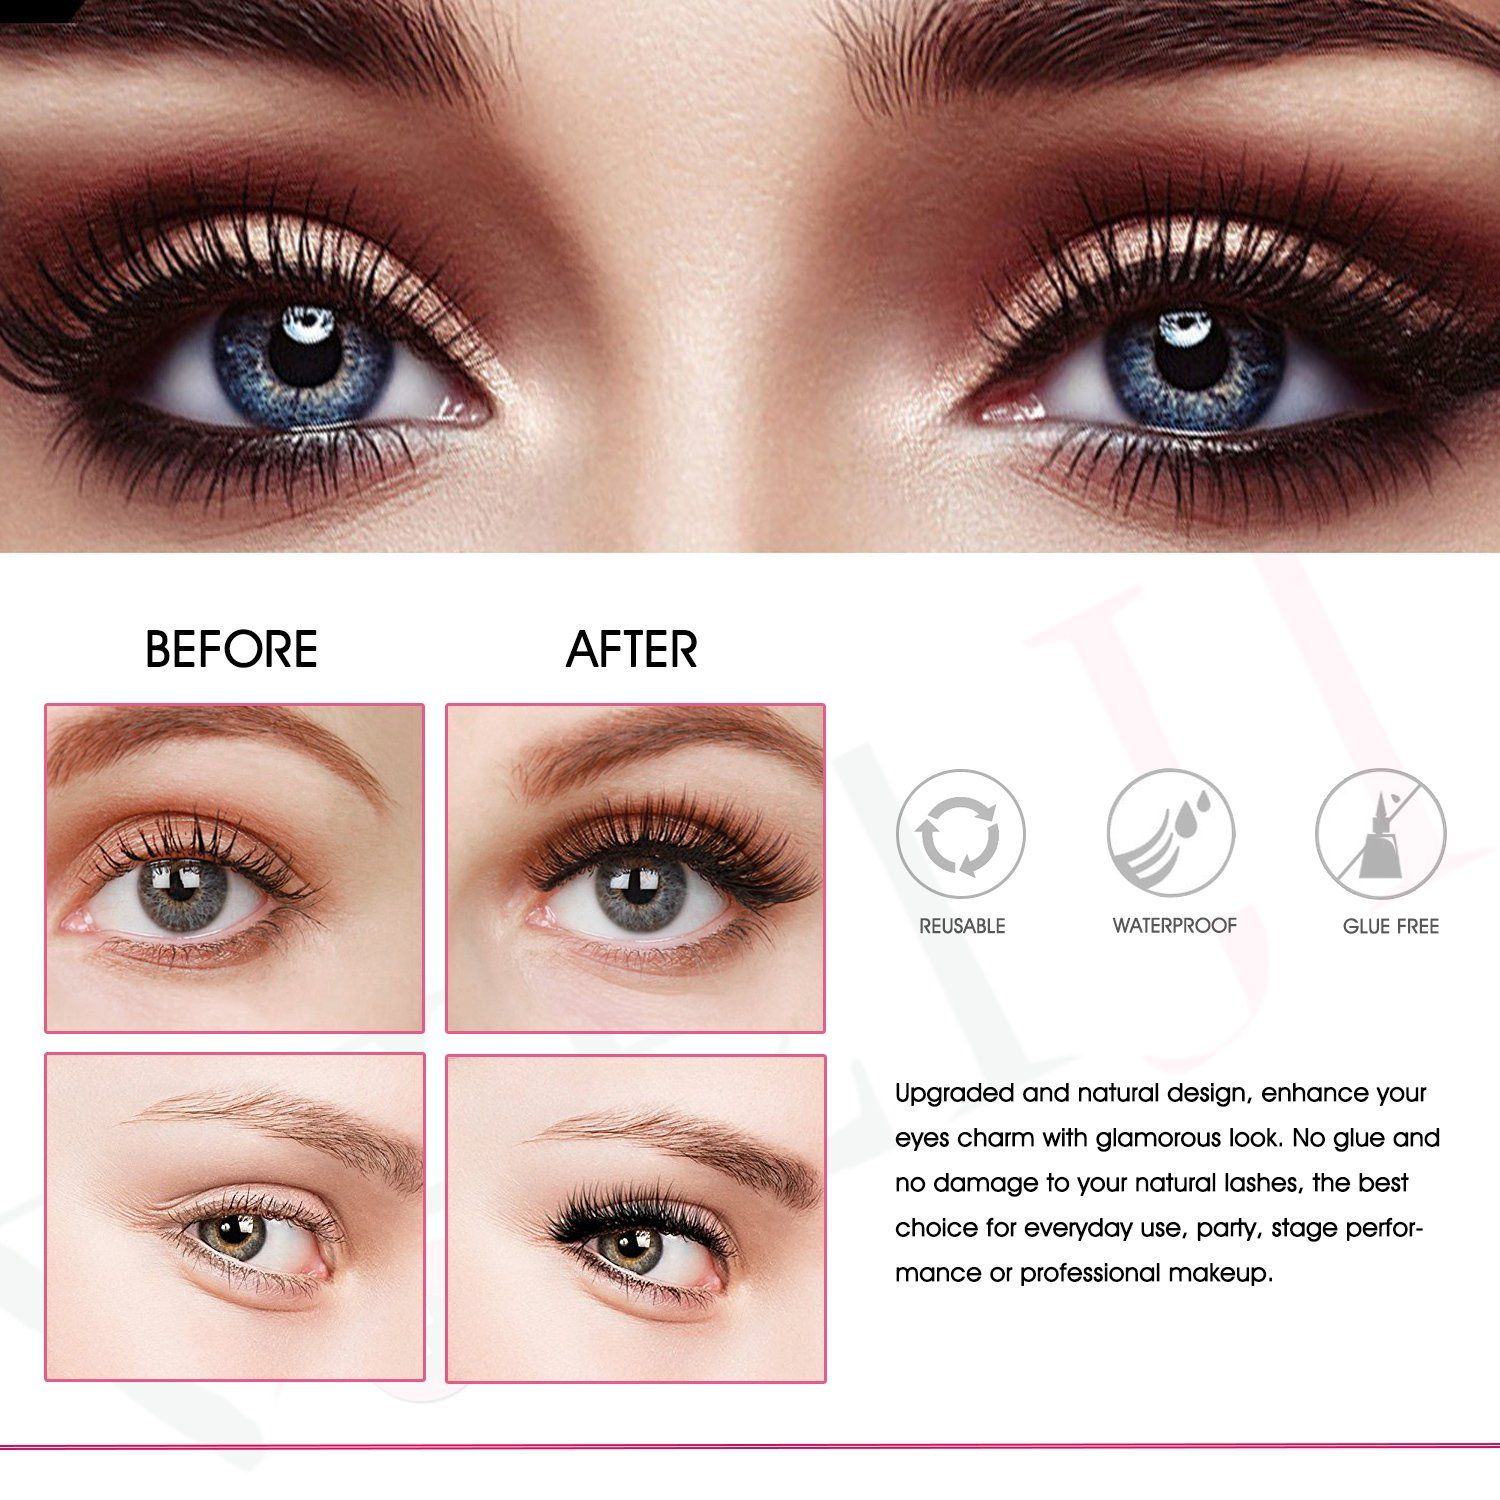 1c7cc4ddd26 Magnetic Eyelashes No Glue Dual Magnets Natural False Eyelashes 3D Reusable  Full Eye Fake Lashes Extensions Thick Soft and Handmade Seconds to Apply 1  ...